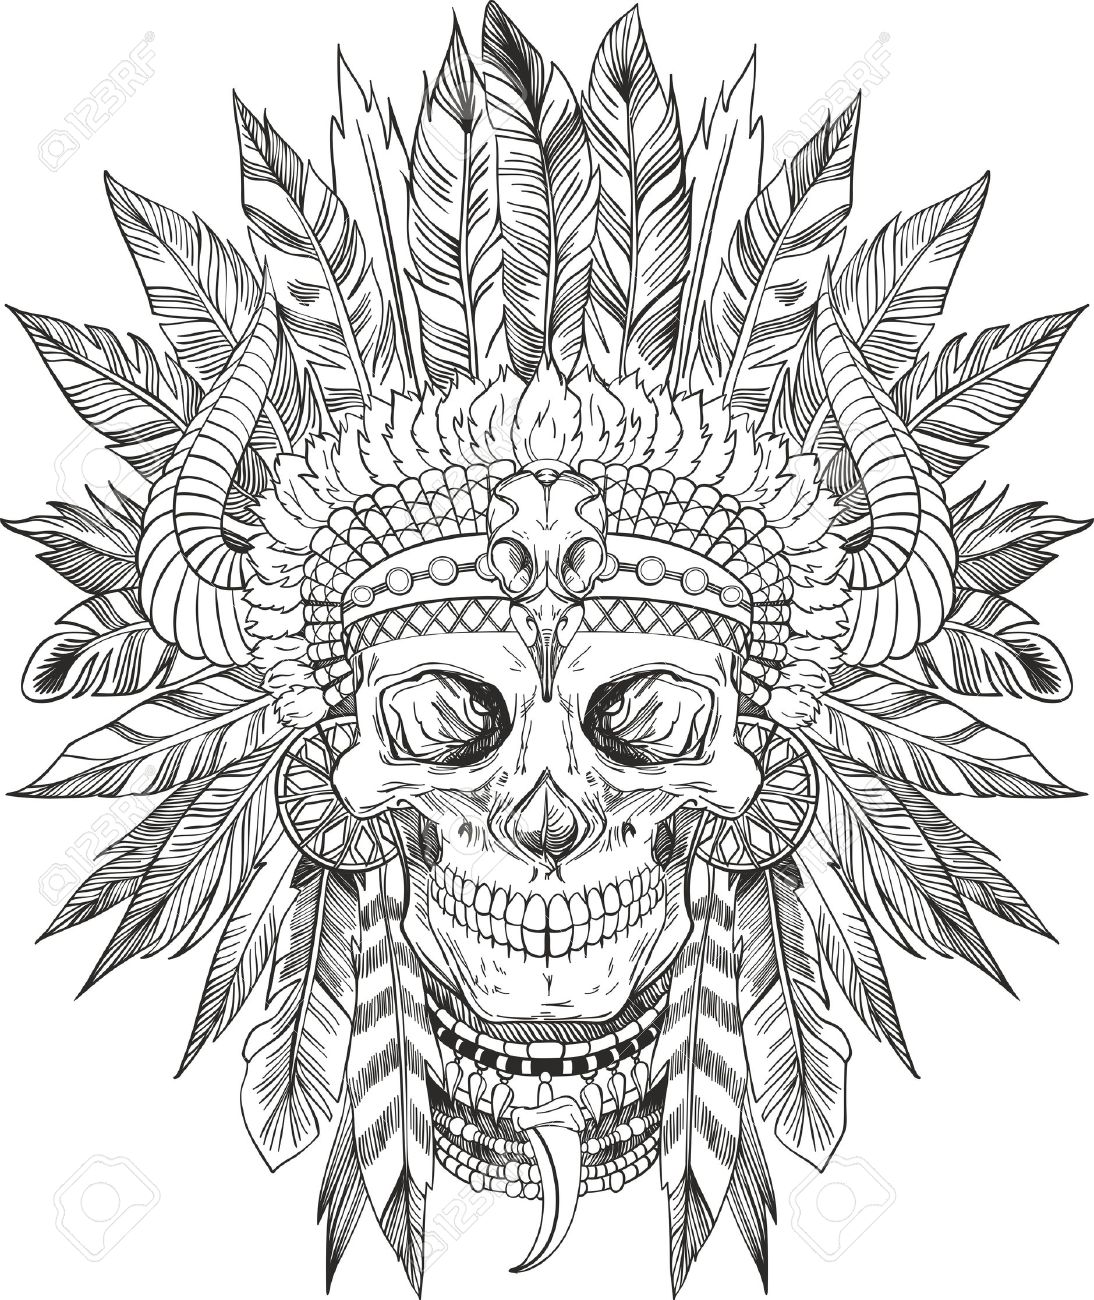 hight resolution of 1094x1300 headdress clipart cherokee indian